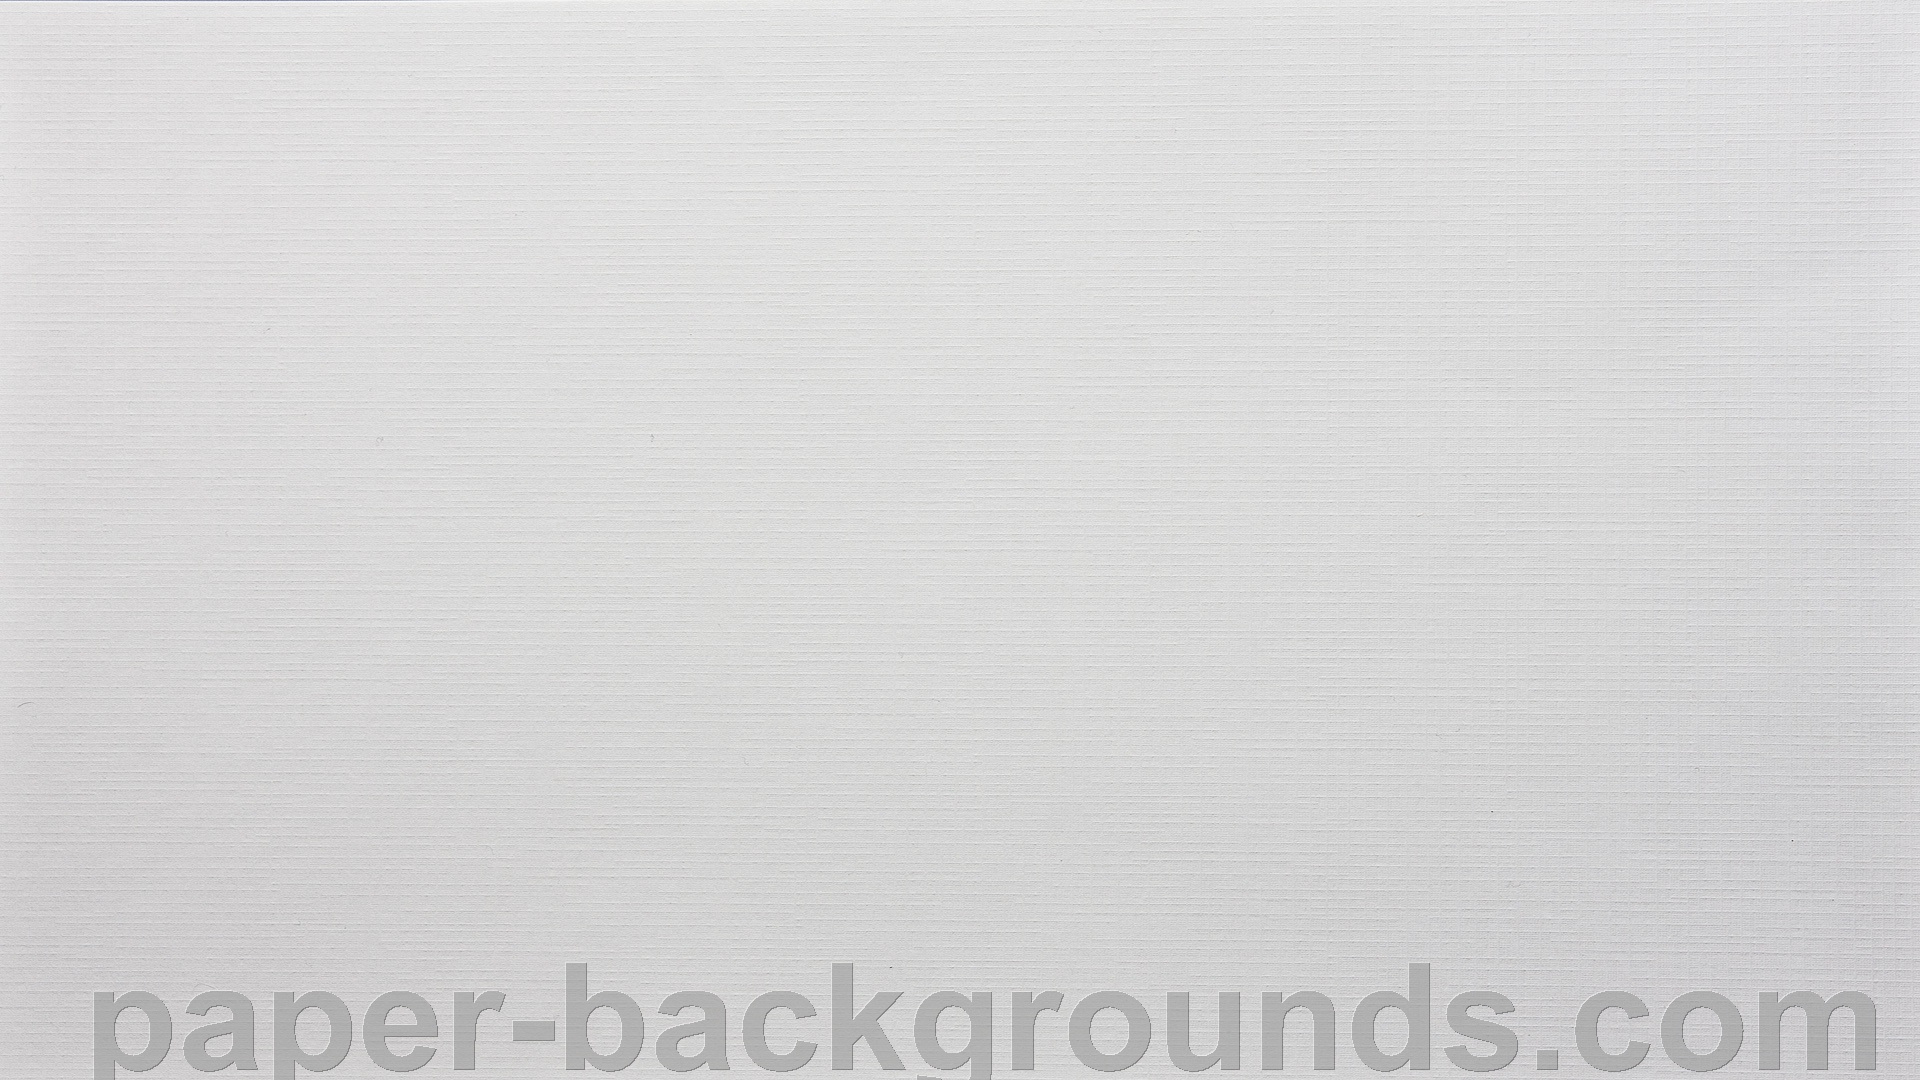 White Paper Background Cardboard Texture HD